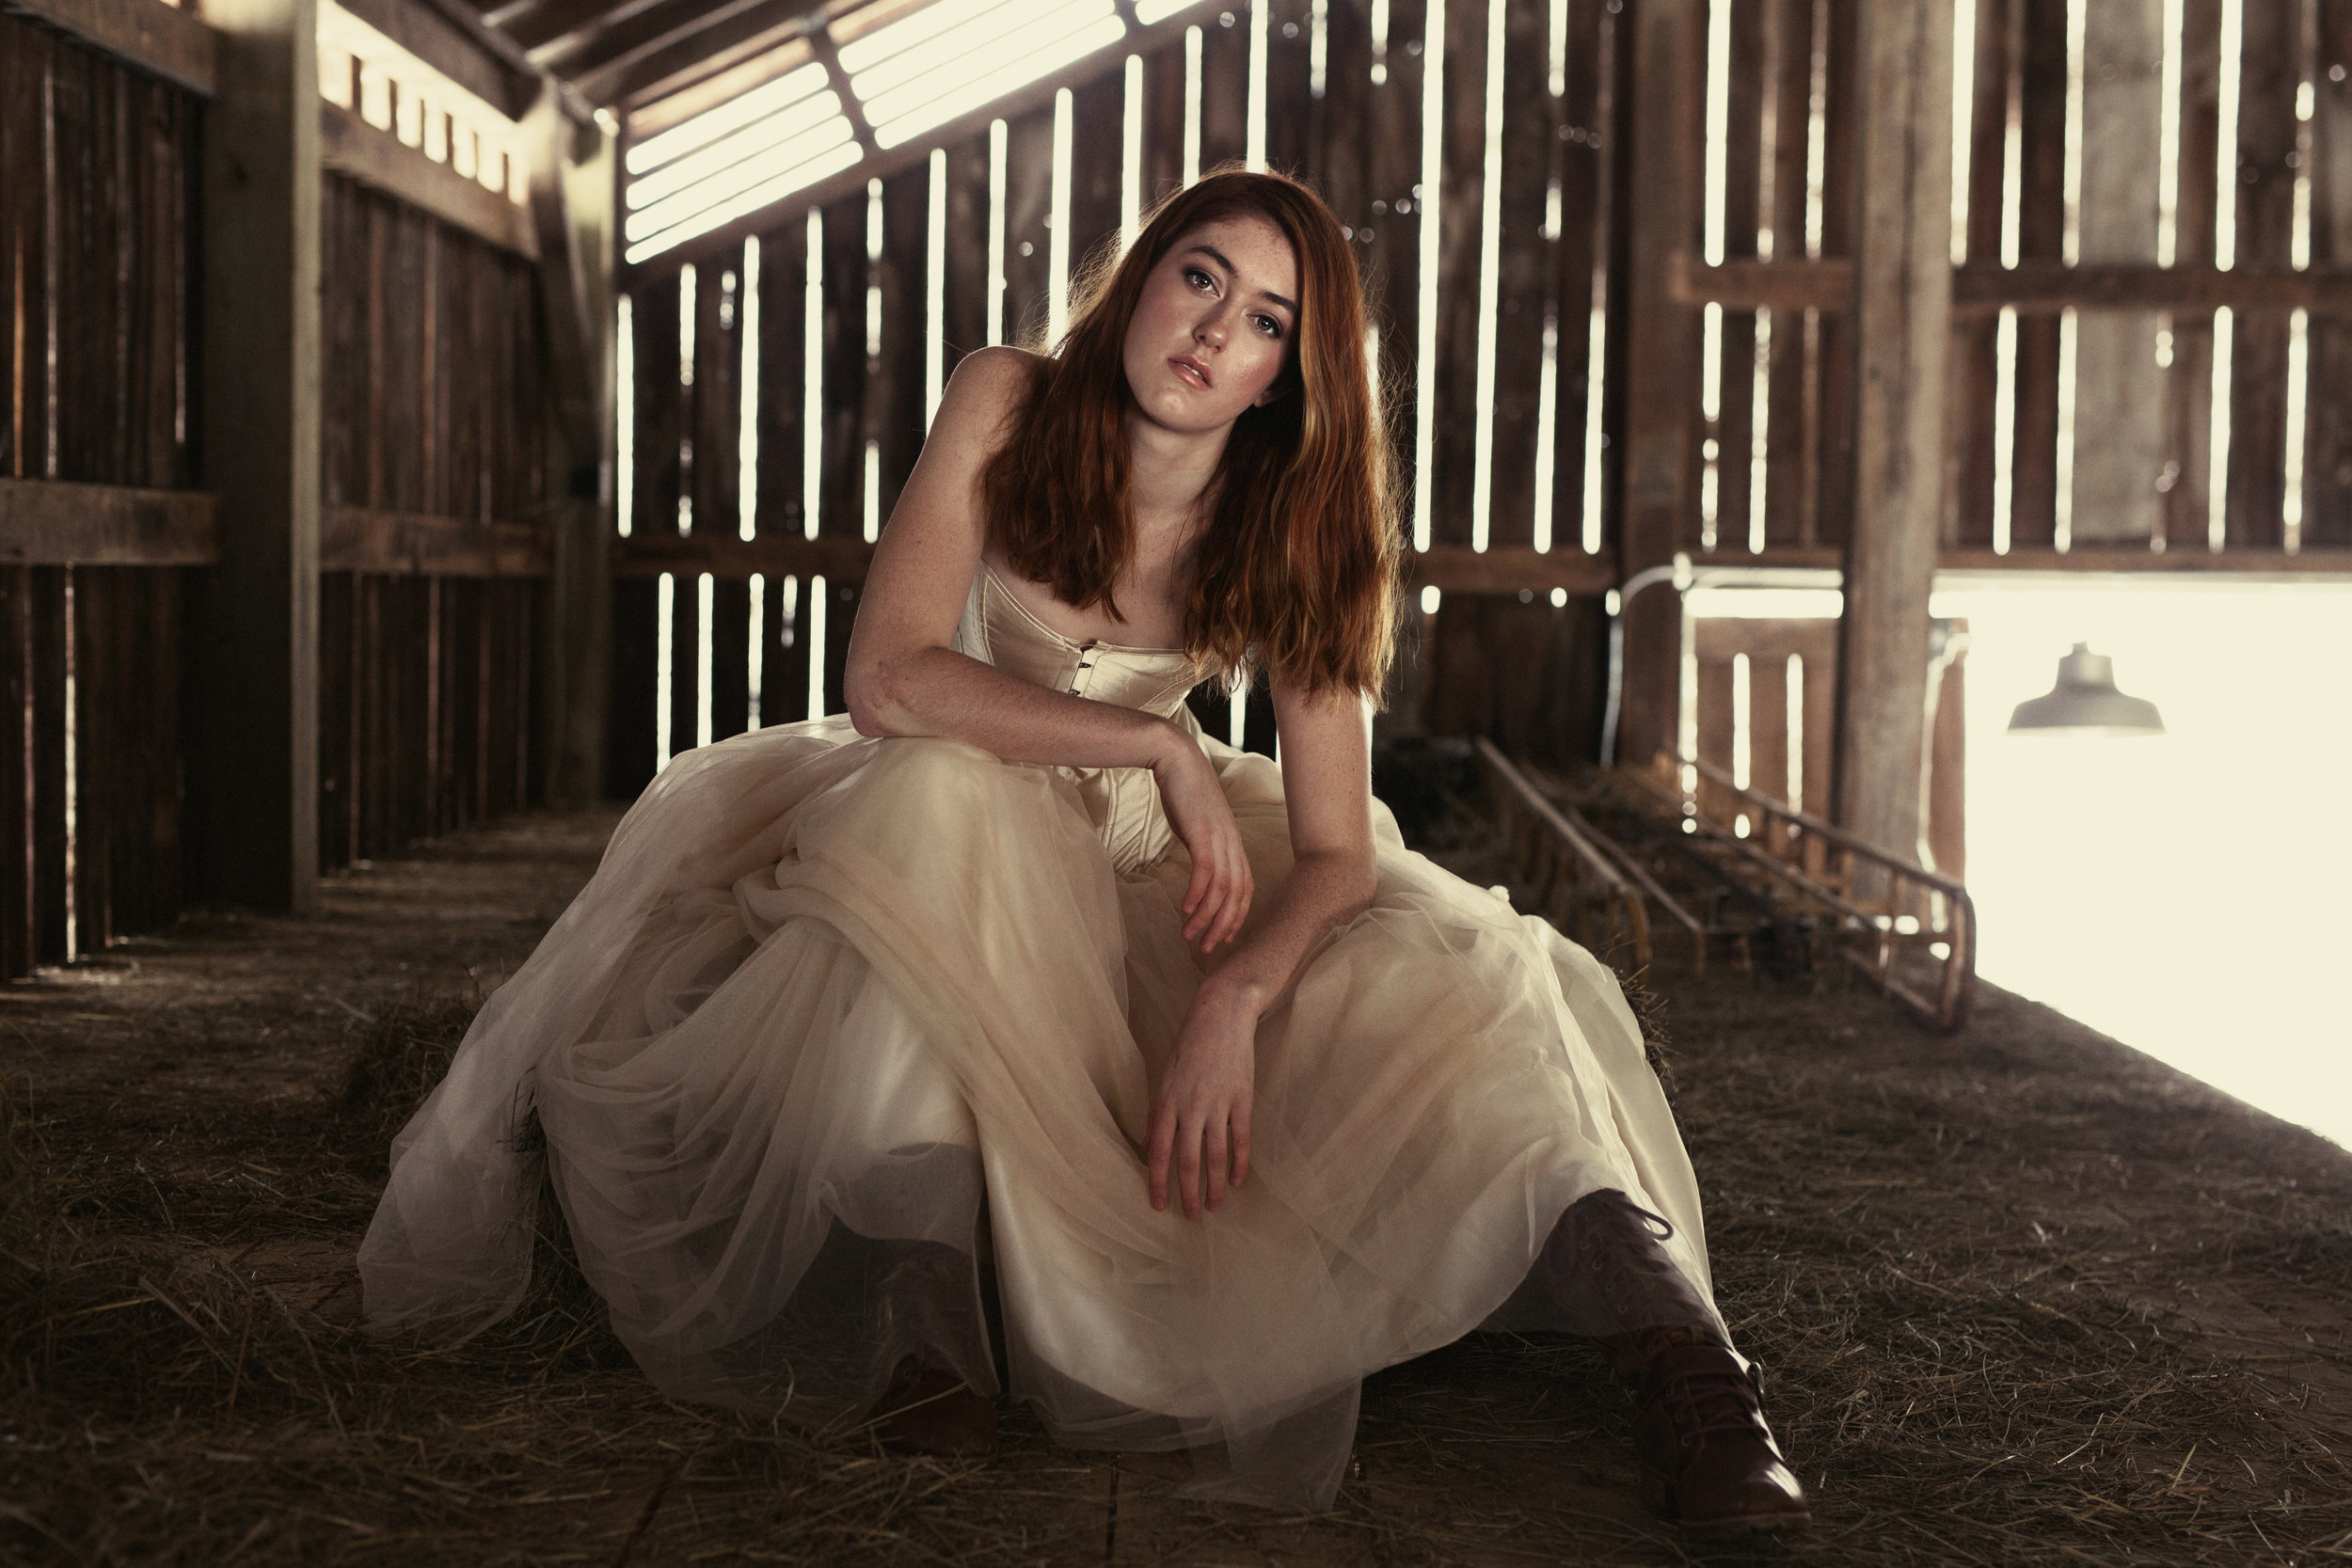 fashion and magazine style photo shoot in a wnc barn